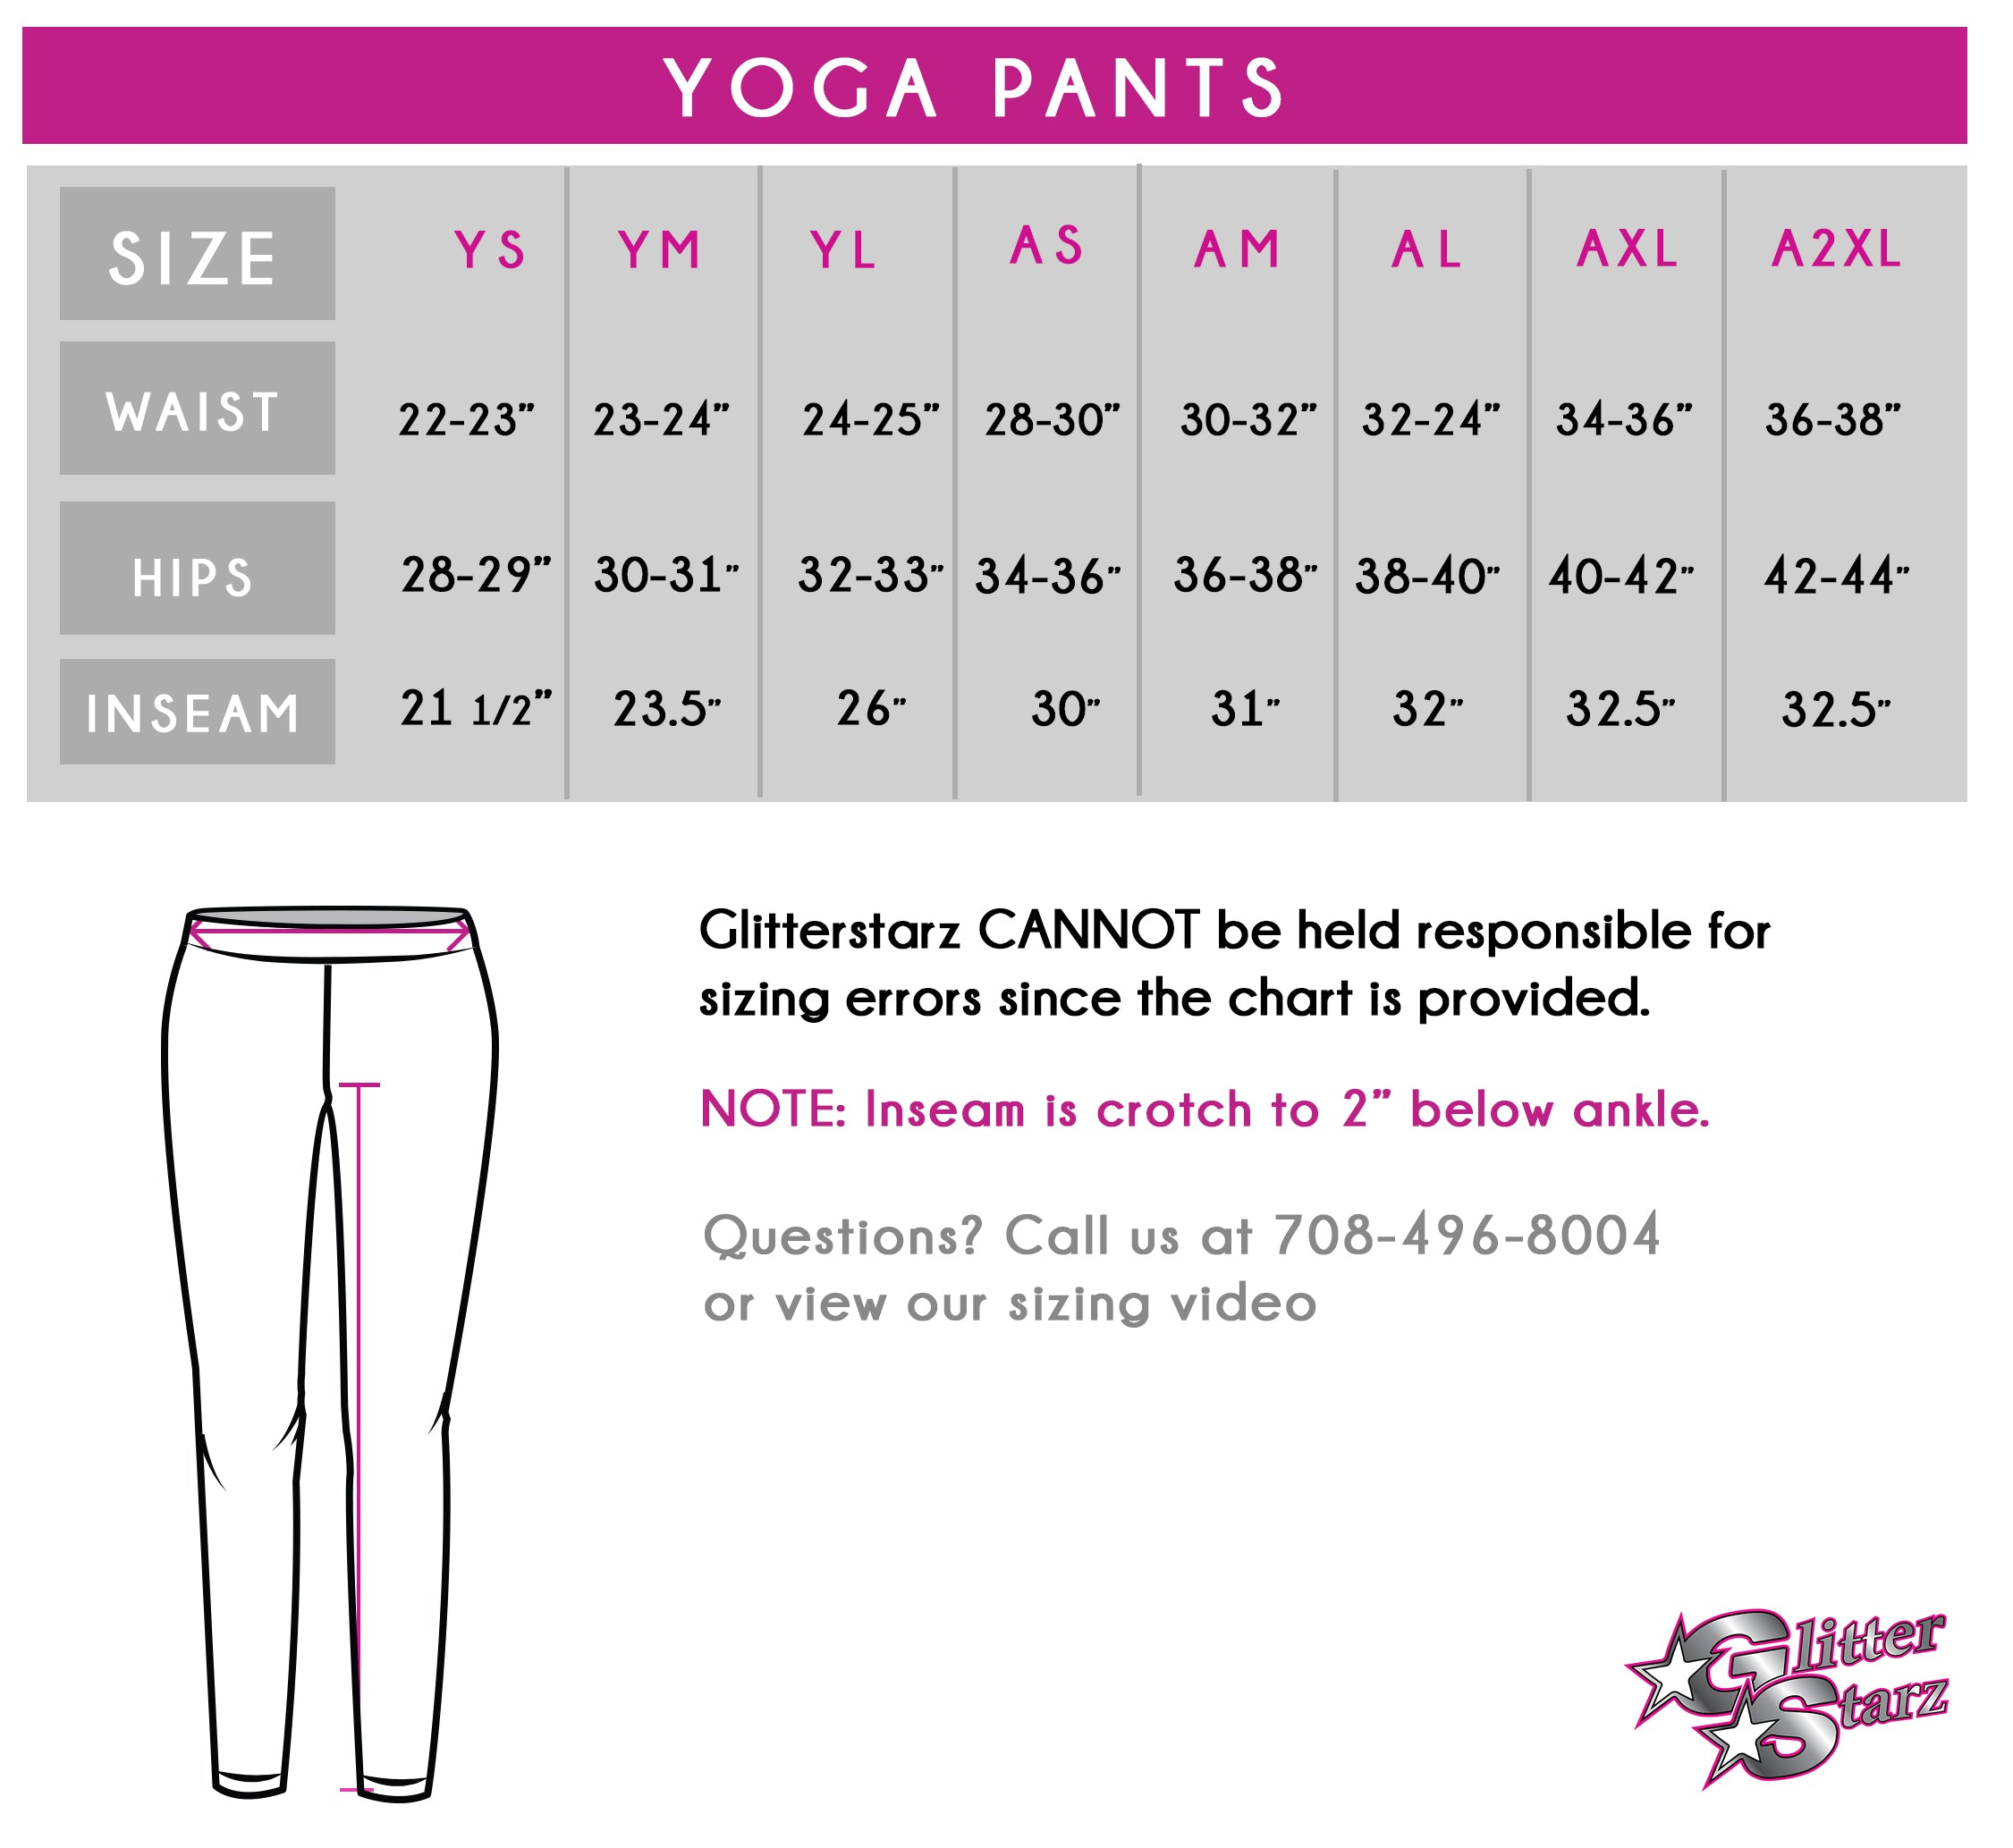 Saratoga School of Dance Rollover Yoga Pants